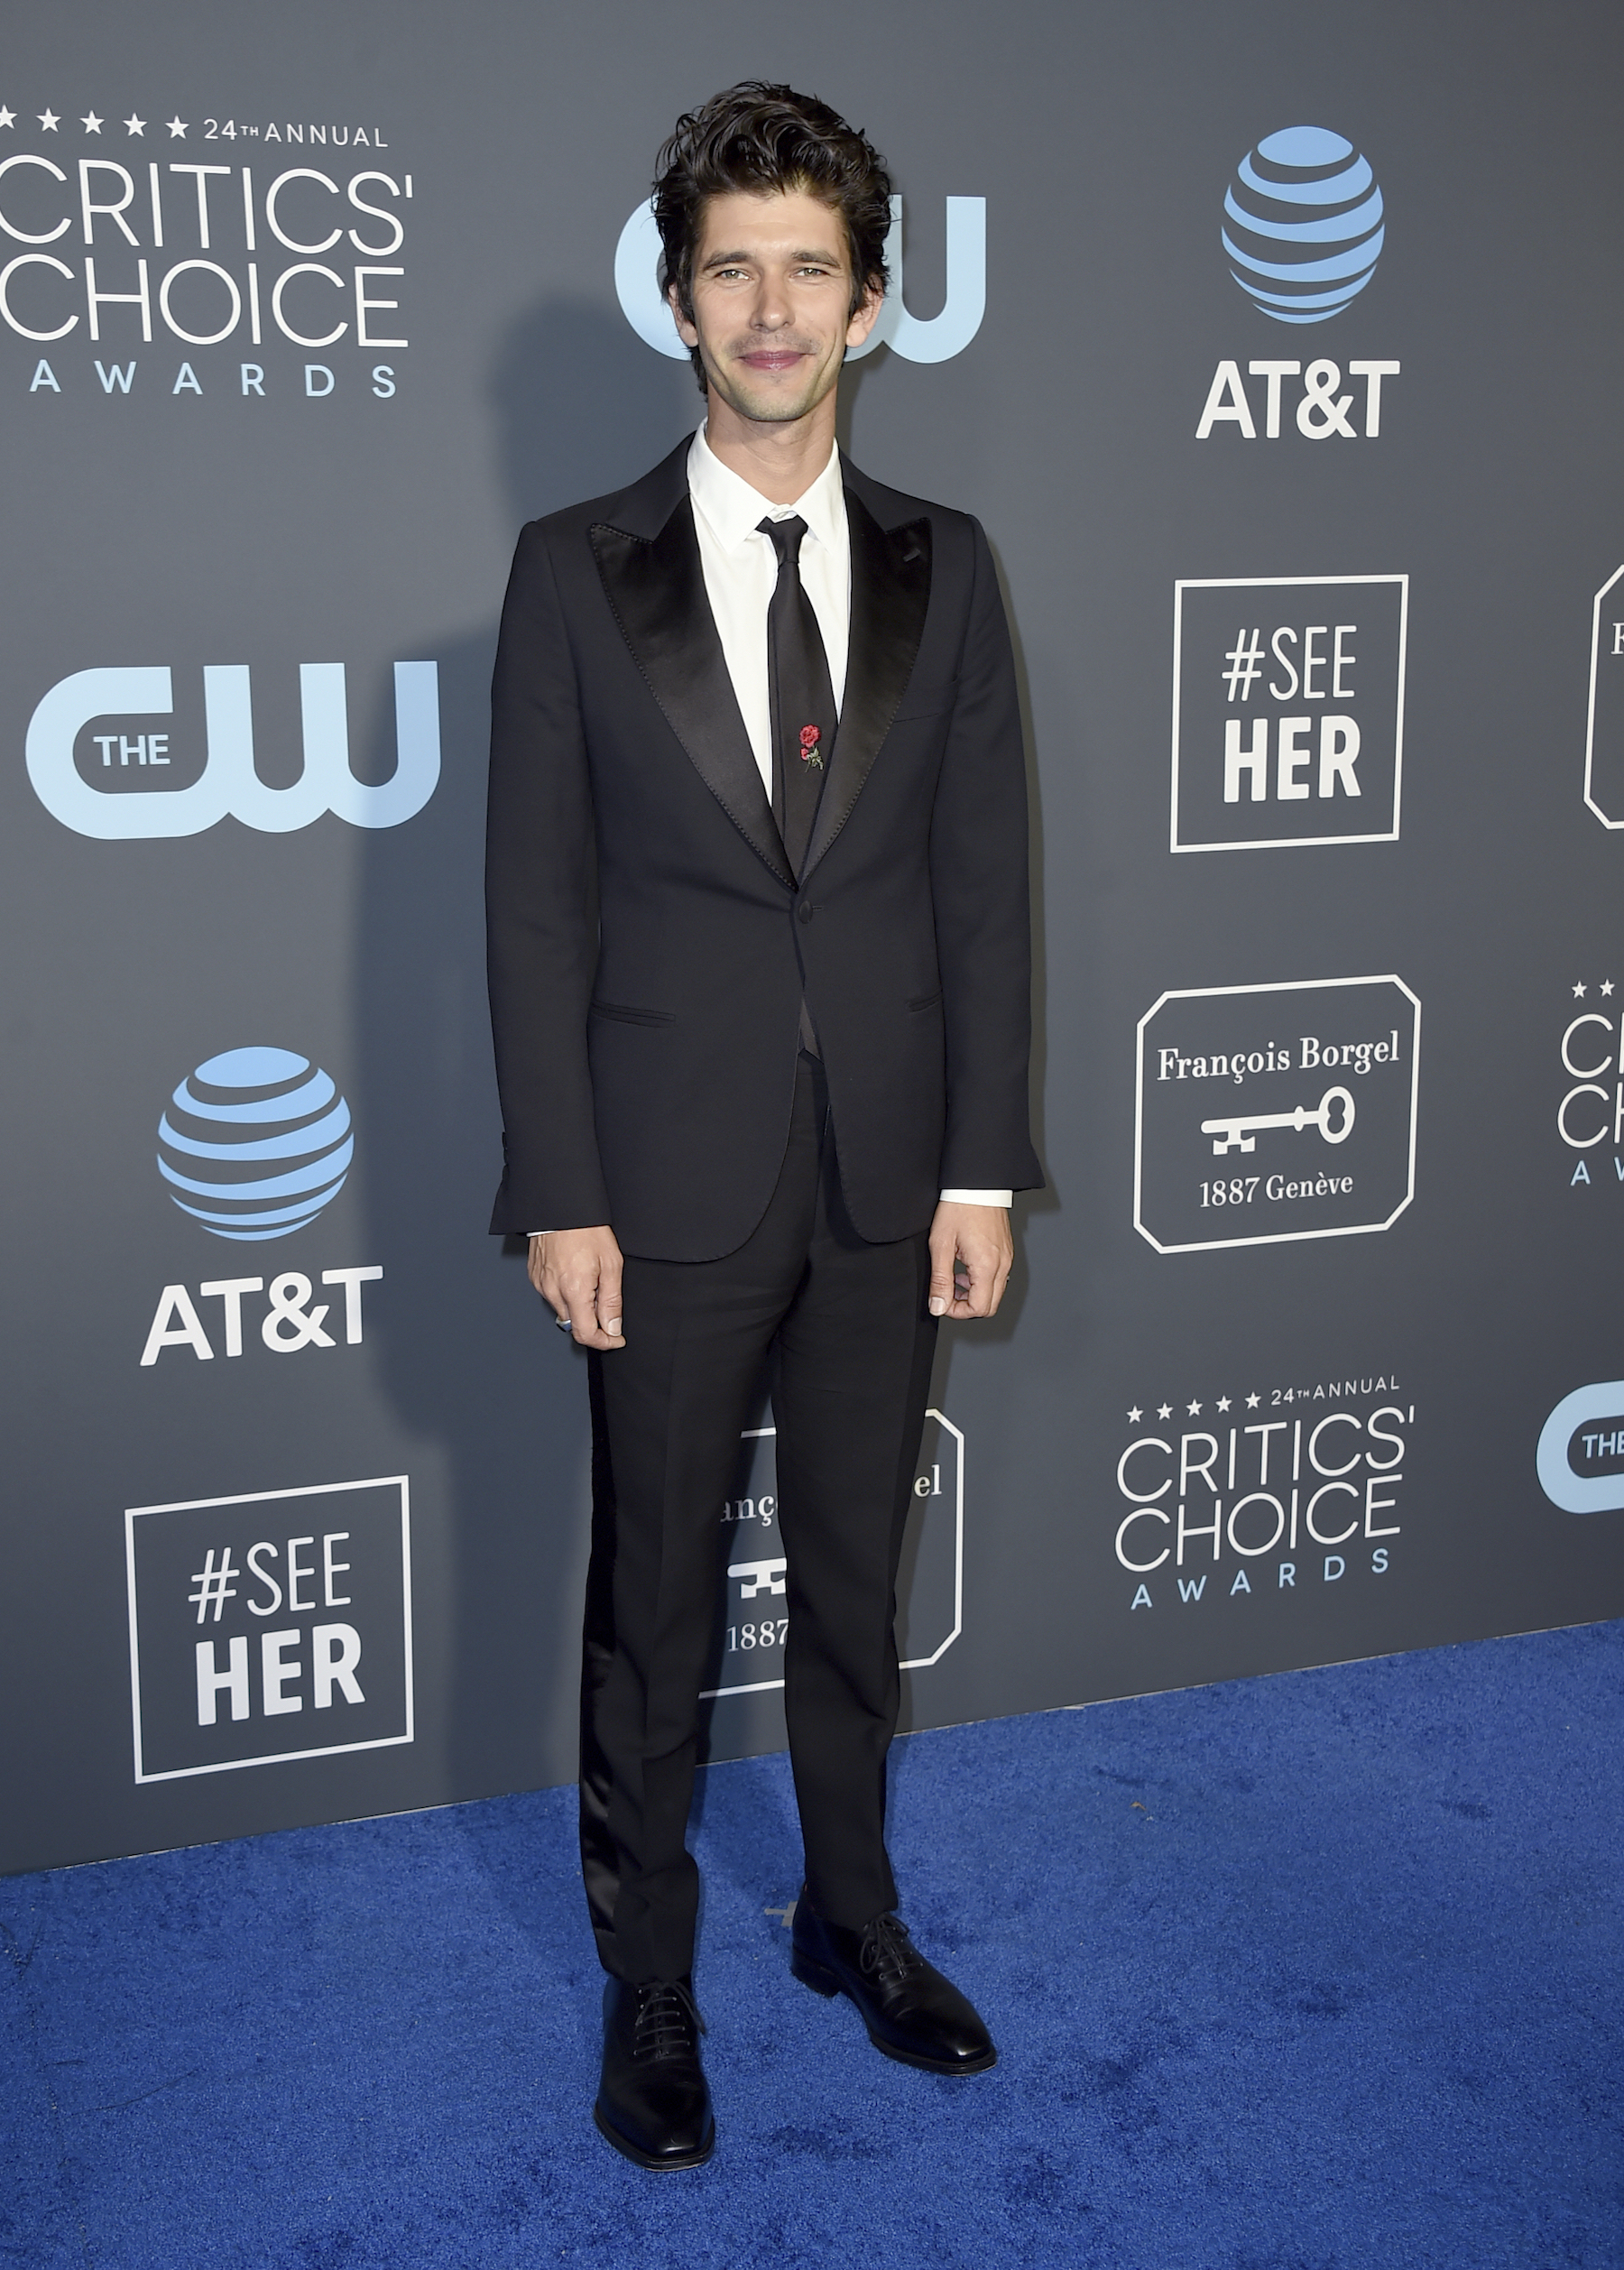 "<div class=""meta image-caption""><div class=""origin-logo origin-image ap""><span>AP</span></div><span class=""caption-text"">Ben Whishaw arrives at the 24th annual Critics' Choice Awards on Sunday, Jan. 13, 2019, at the Barker Hangar in Santa Monica, Calif. (Jordan Strauss/Invision/AP)</span></div>"